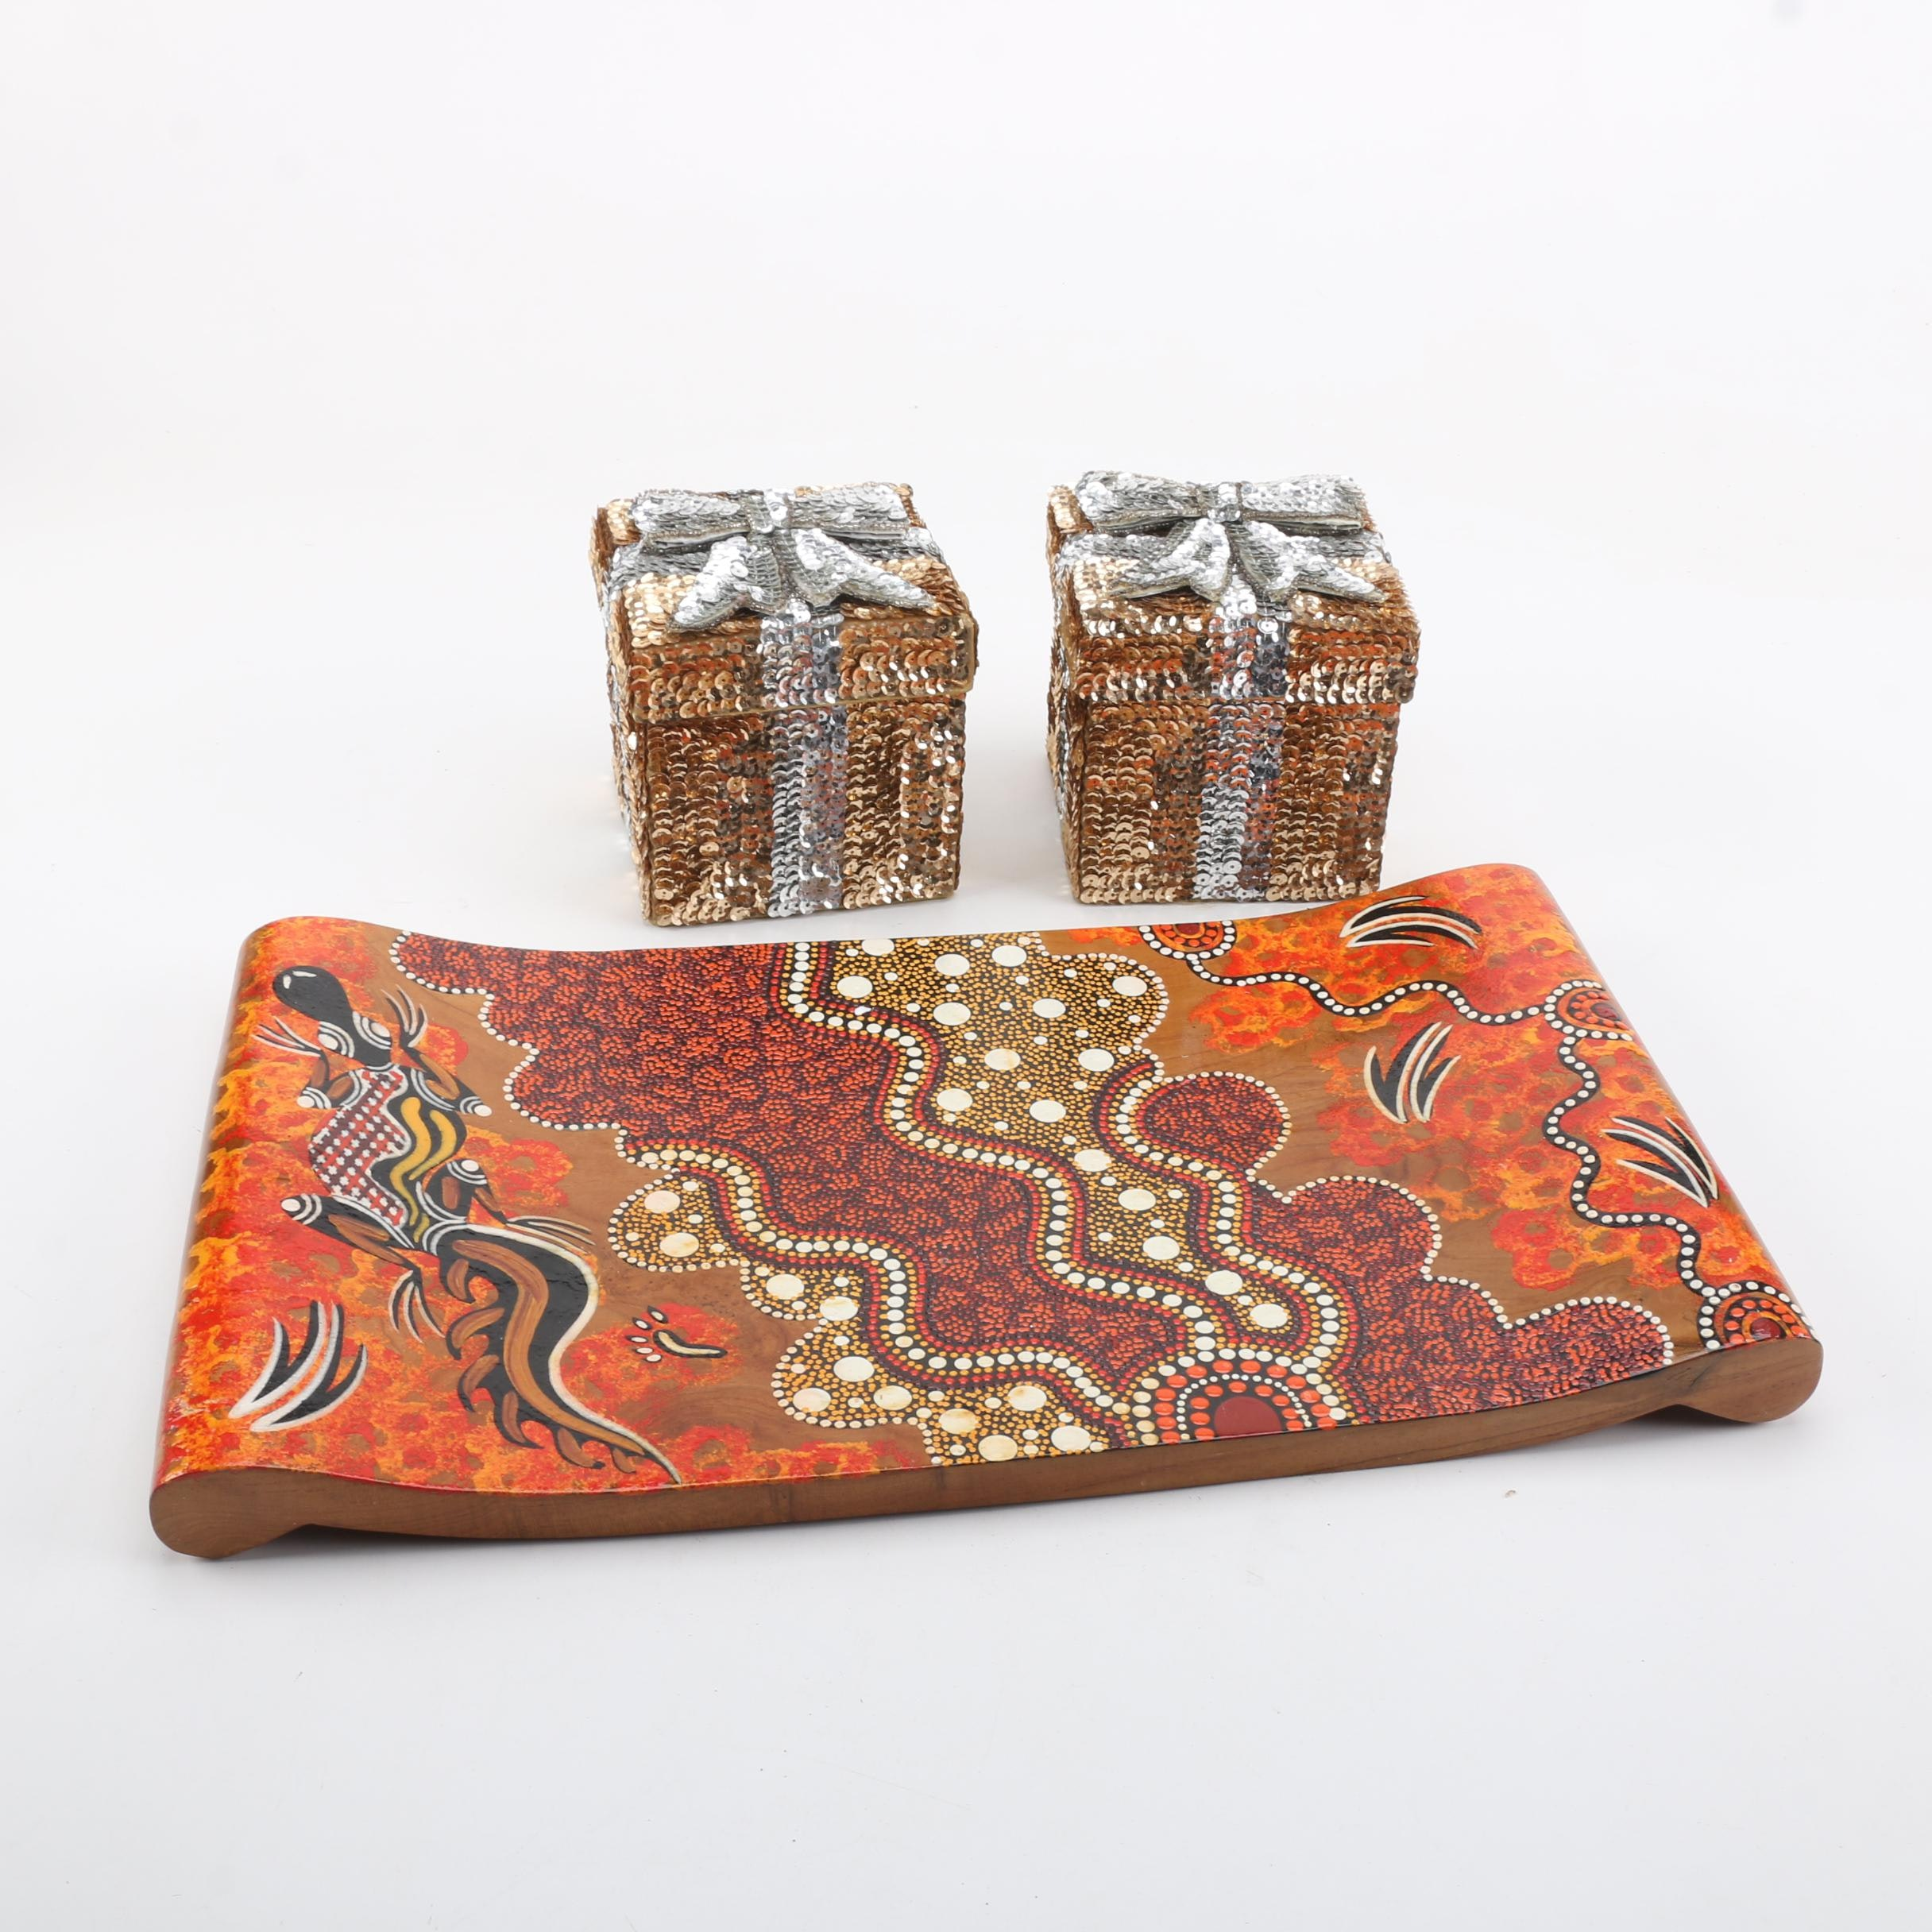 Painted Aboriginal Style Wood Tray and Sequin Boxes